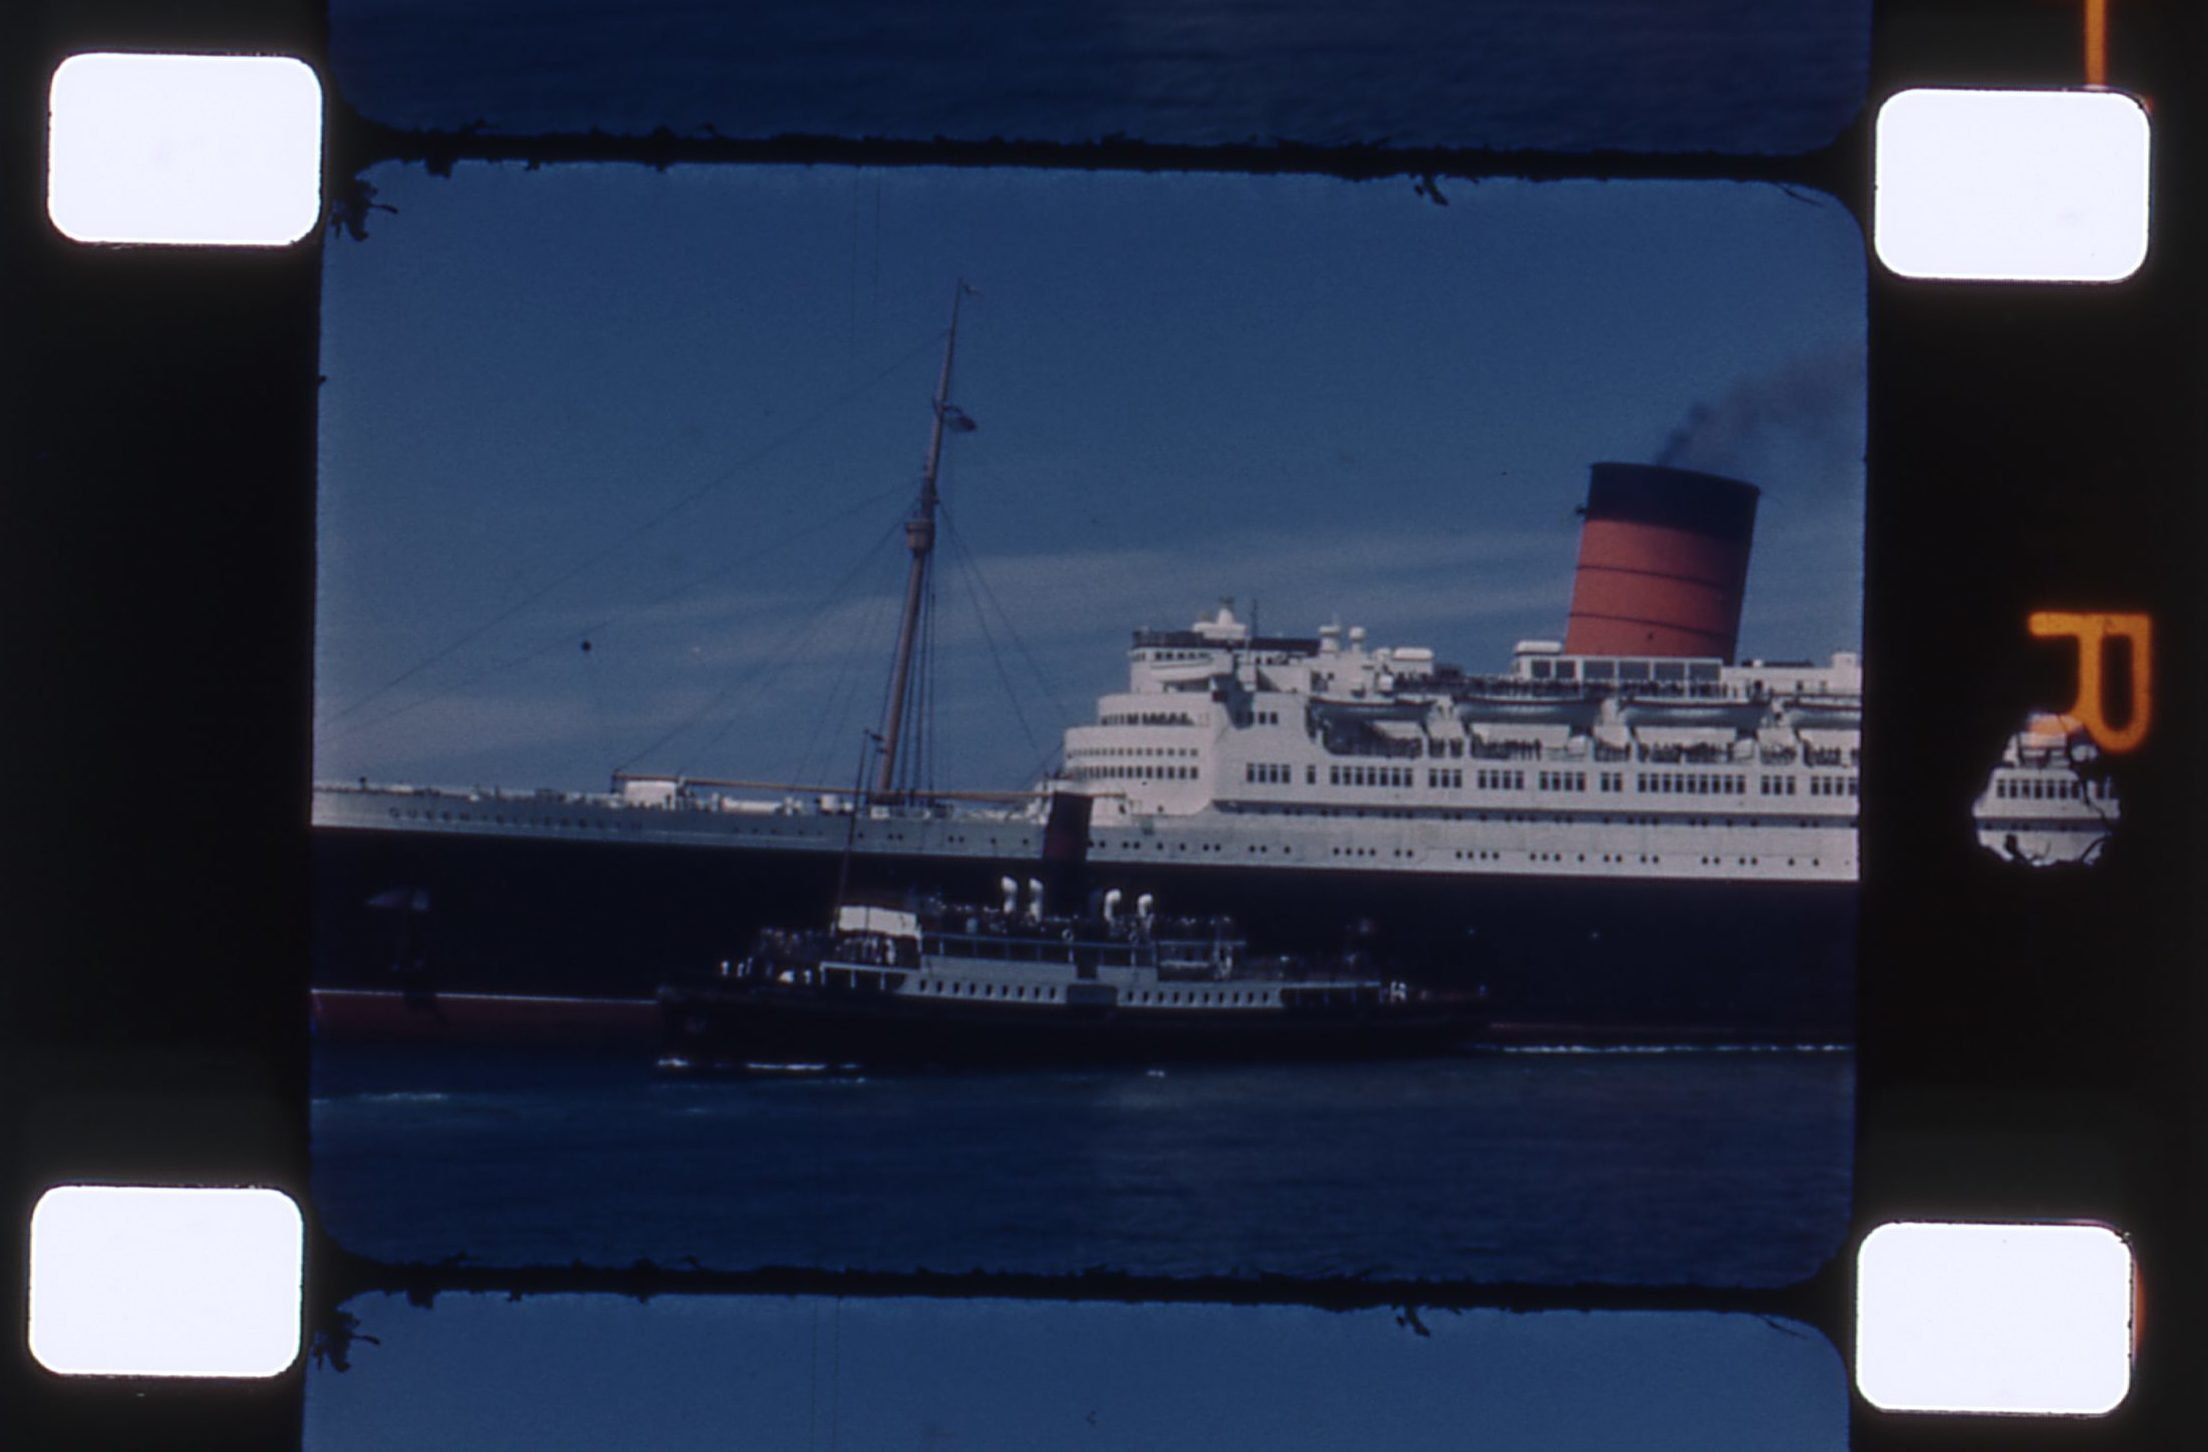 RMS Queen Elizabeth 1949 Cherbourg France